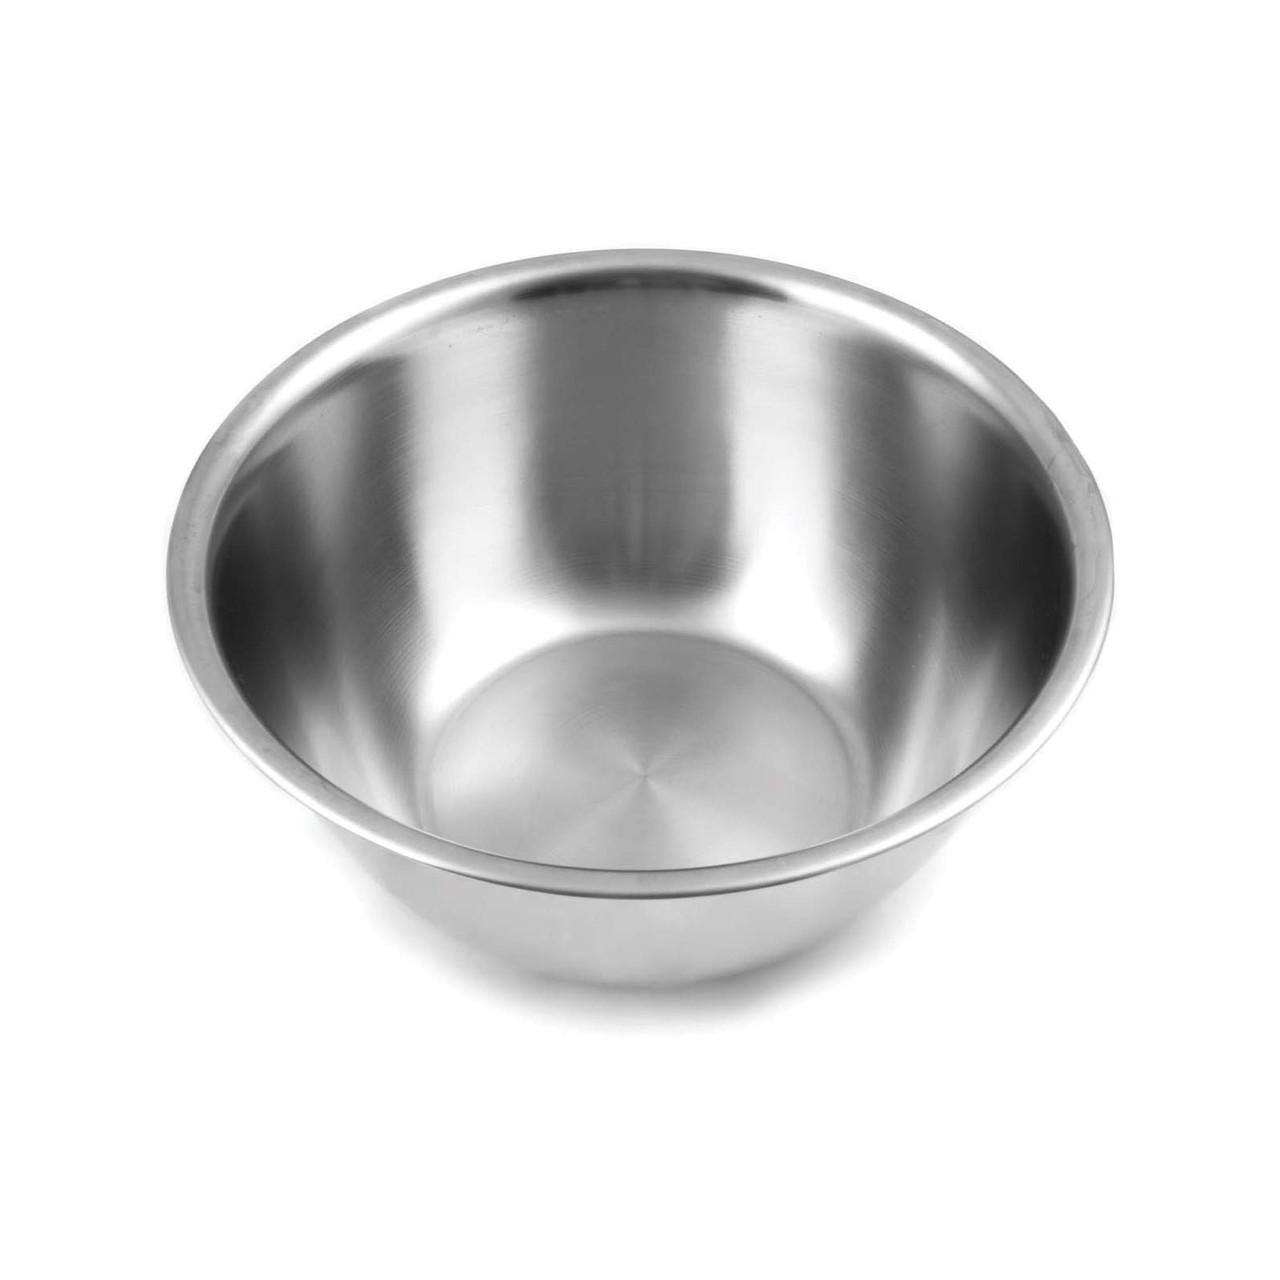 FOX RUN STAINLESS STEEL MIXING BOWL 4.25QT